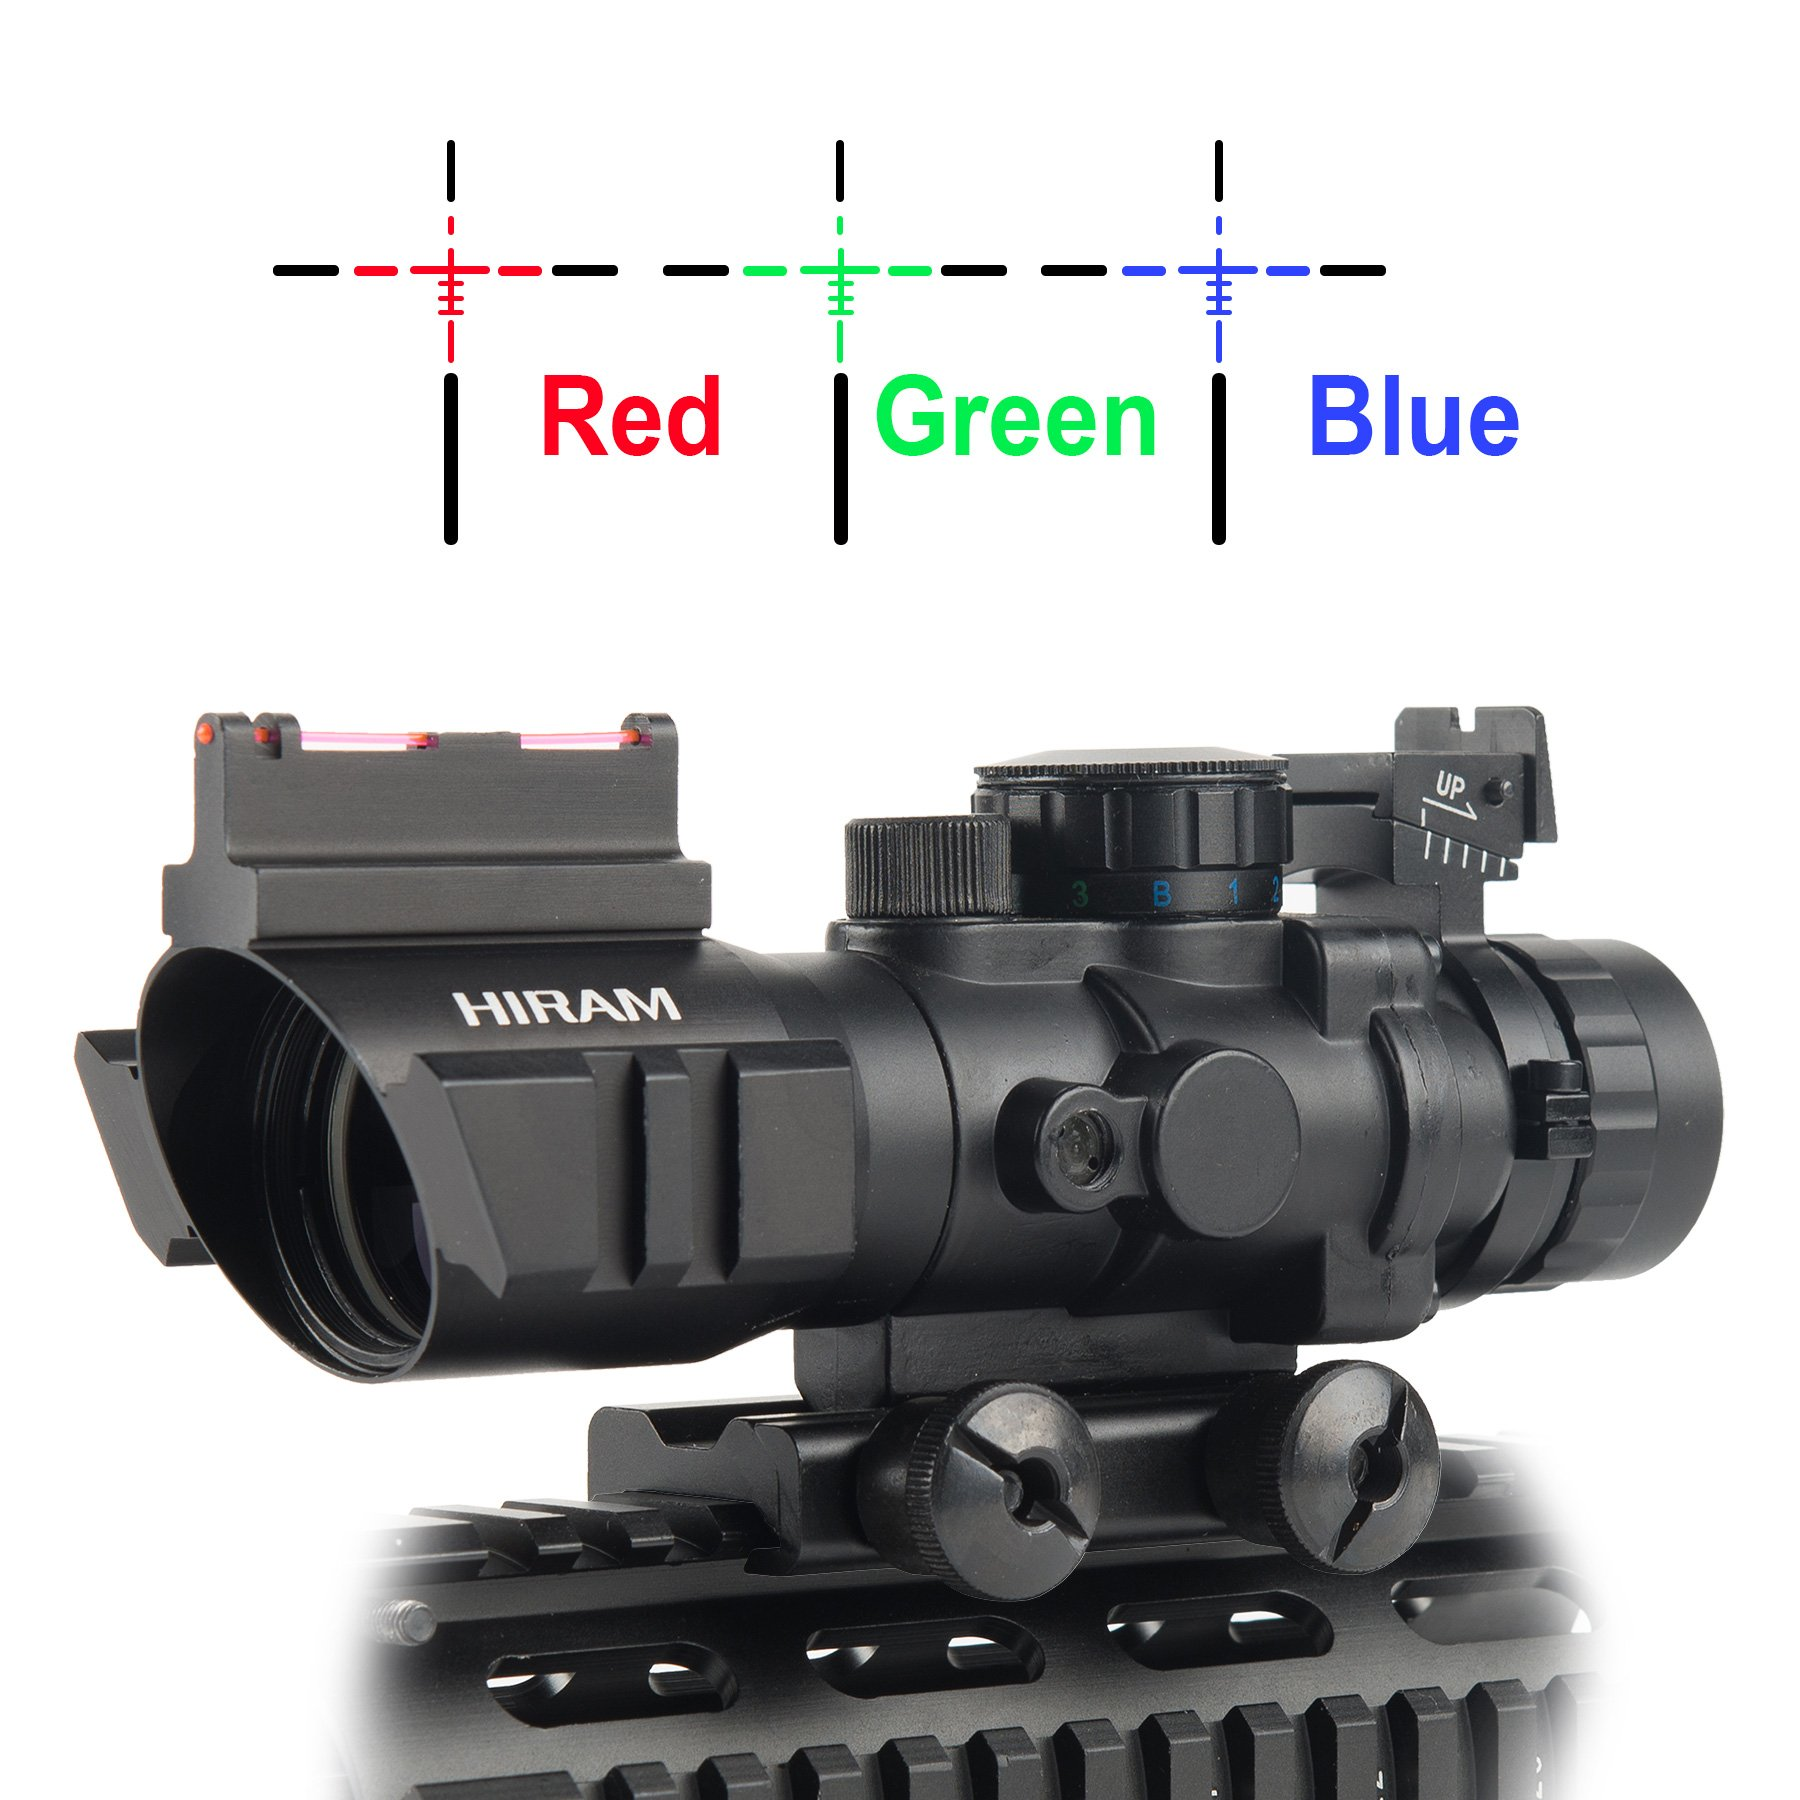 Hiram 4x32 Tactical Prismatic Rifle Scope Red / Green / Blue Reticle Long Eye Relief 3 Brightness W/ Top Fiber Optic Sight and Weaver Slots